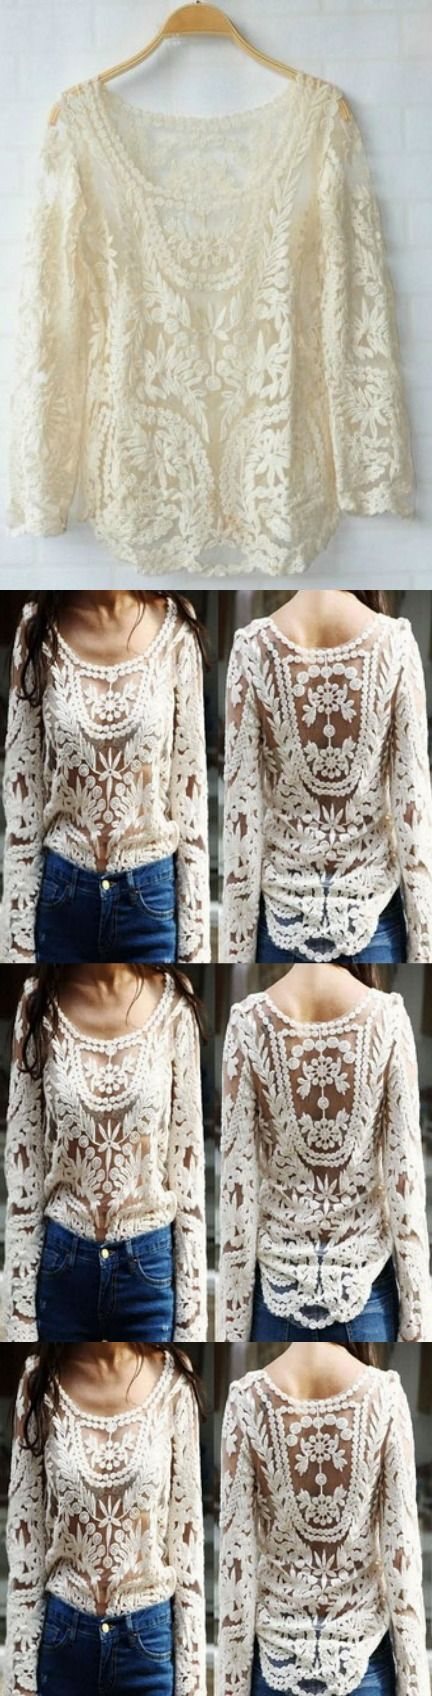 Embroidery Floral Lace Crochet Tee Top! Click The Image To Buy It Now or Tag Someone You Want To Buy This For. #Crochet